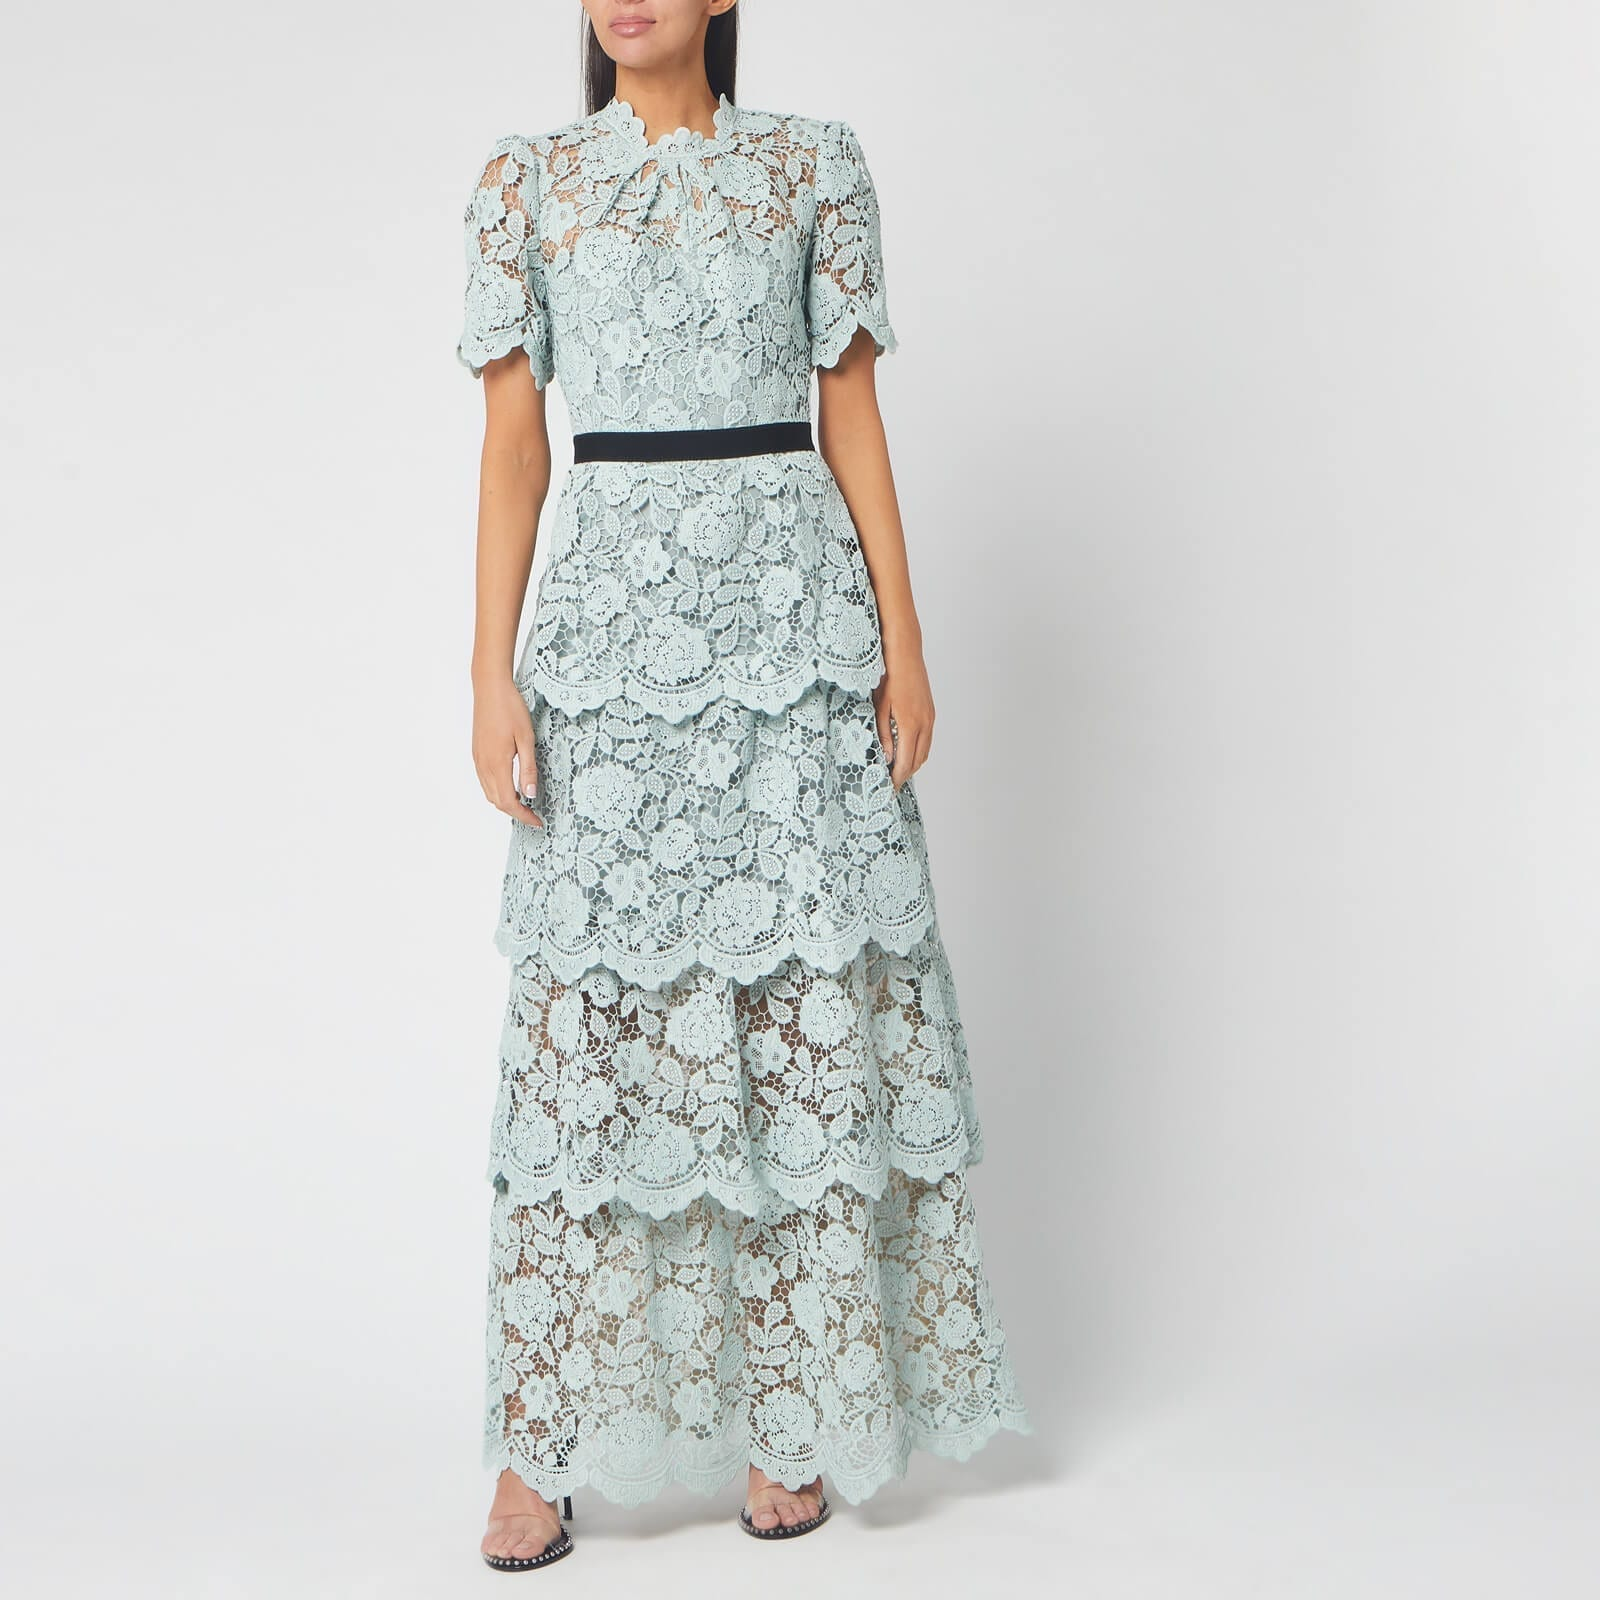 SELF-PORTRAIT Women's Flower Lace Tiered Maxi Dress